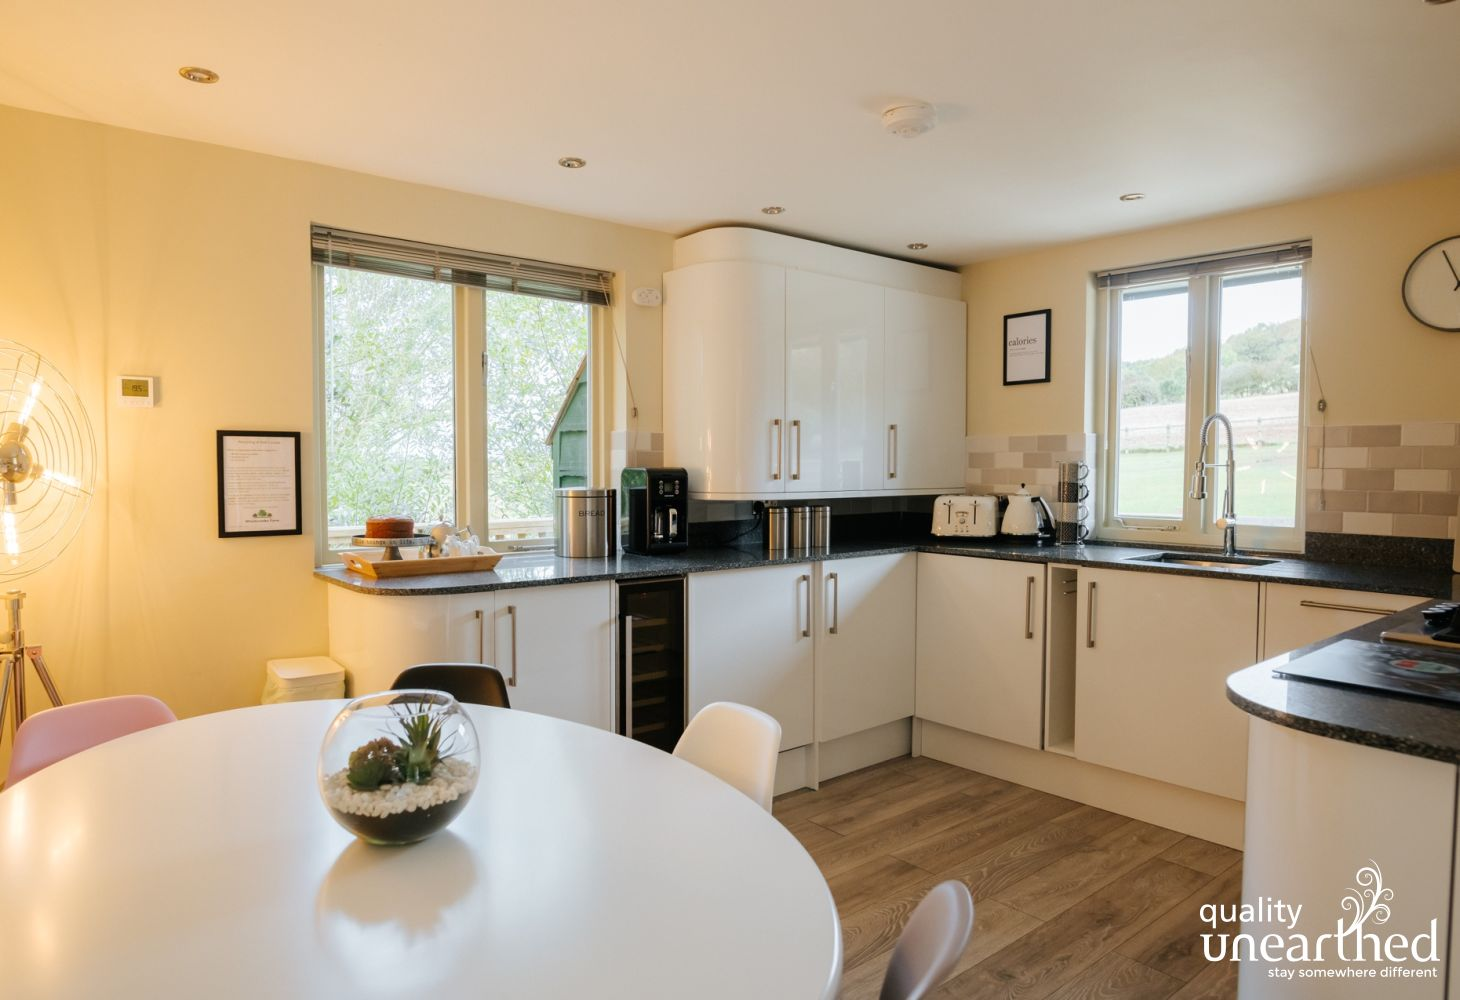 The fully fitted kitchen has all you could need